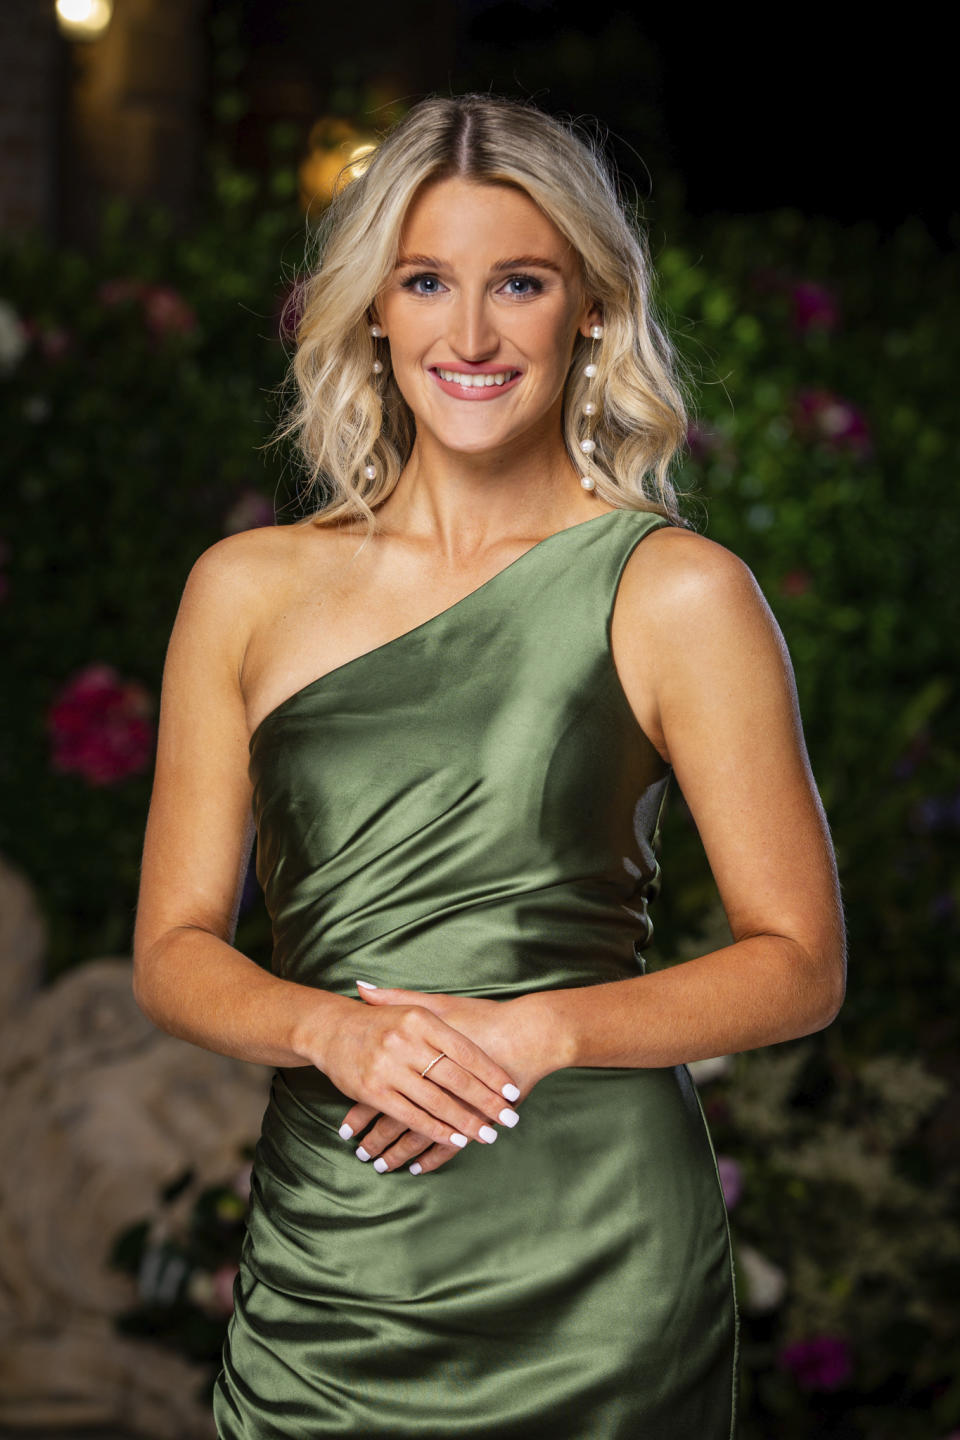 The Bachelor 2021 contestant Lily.